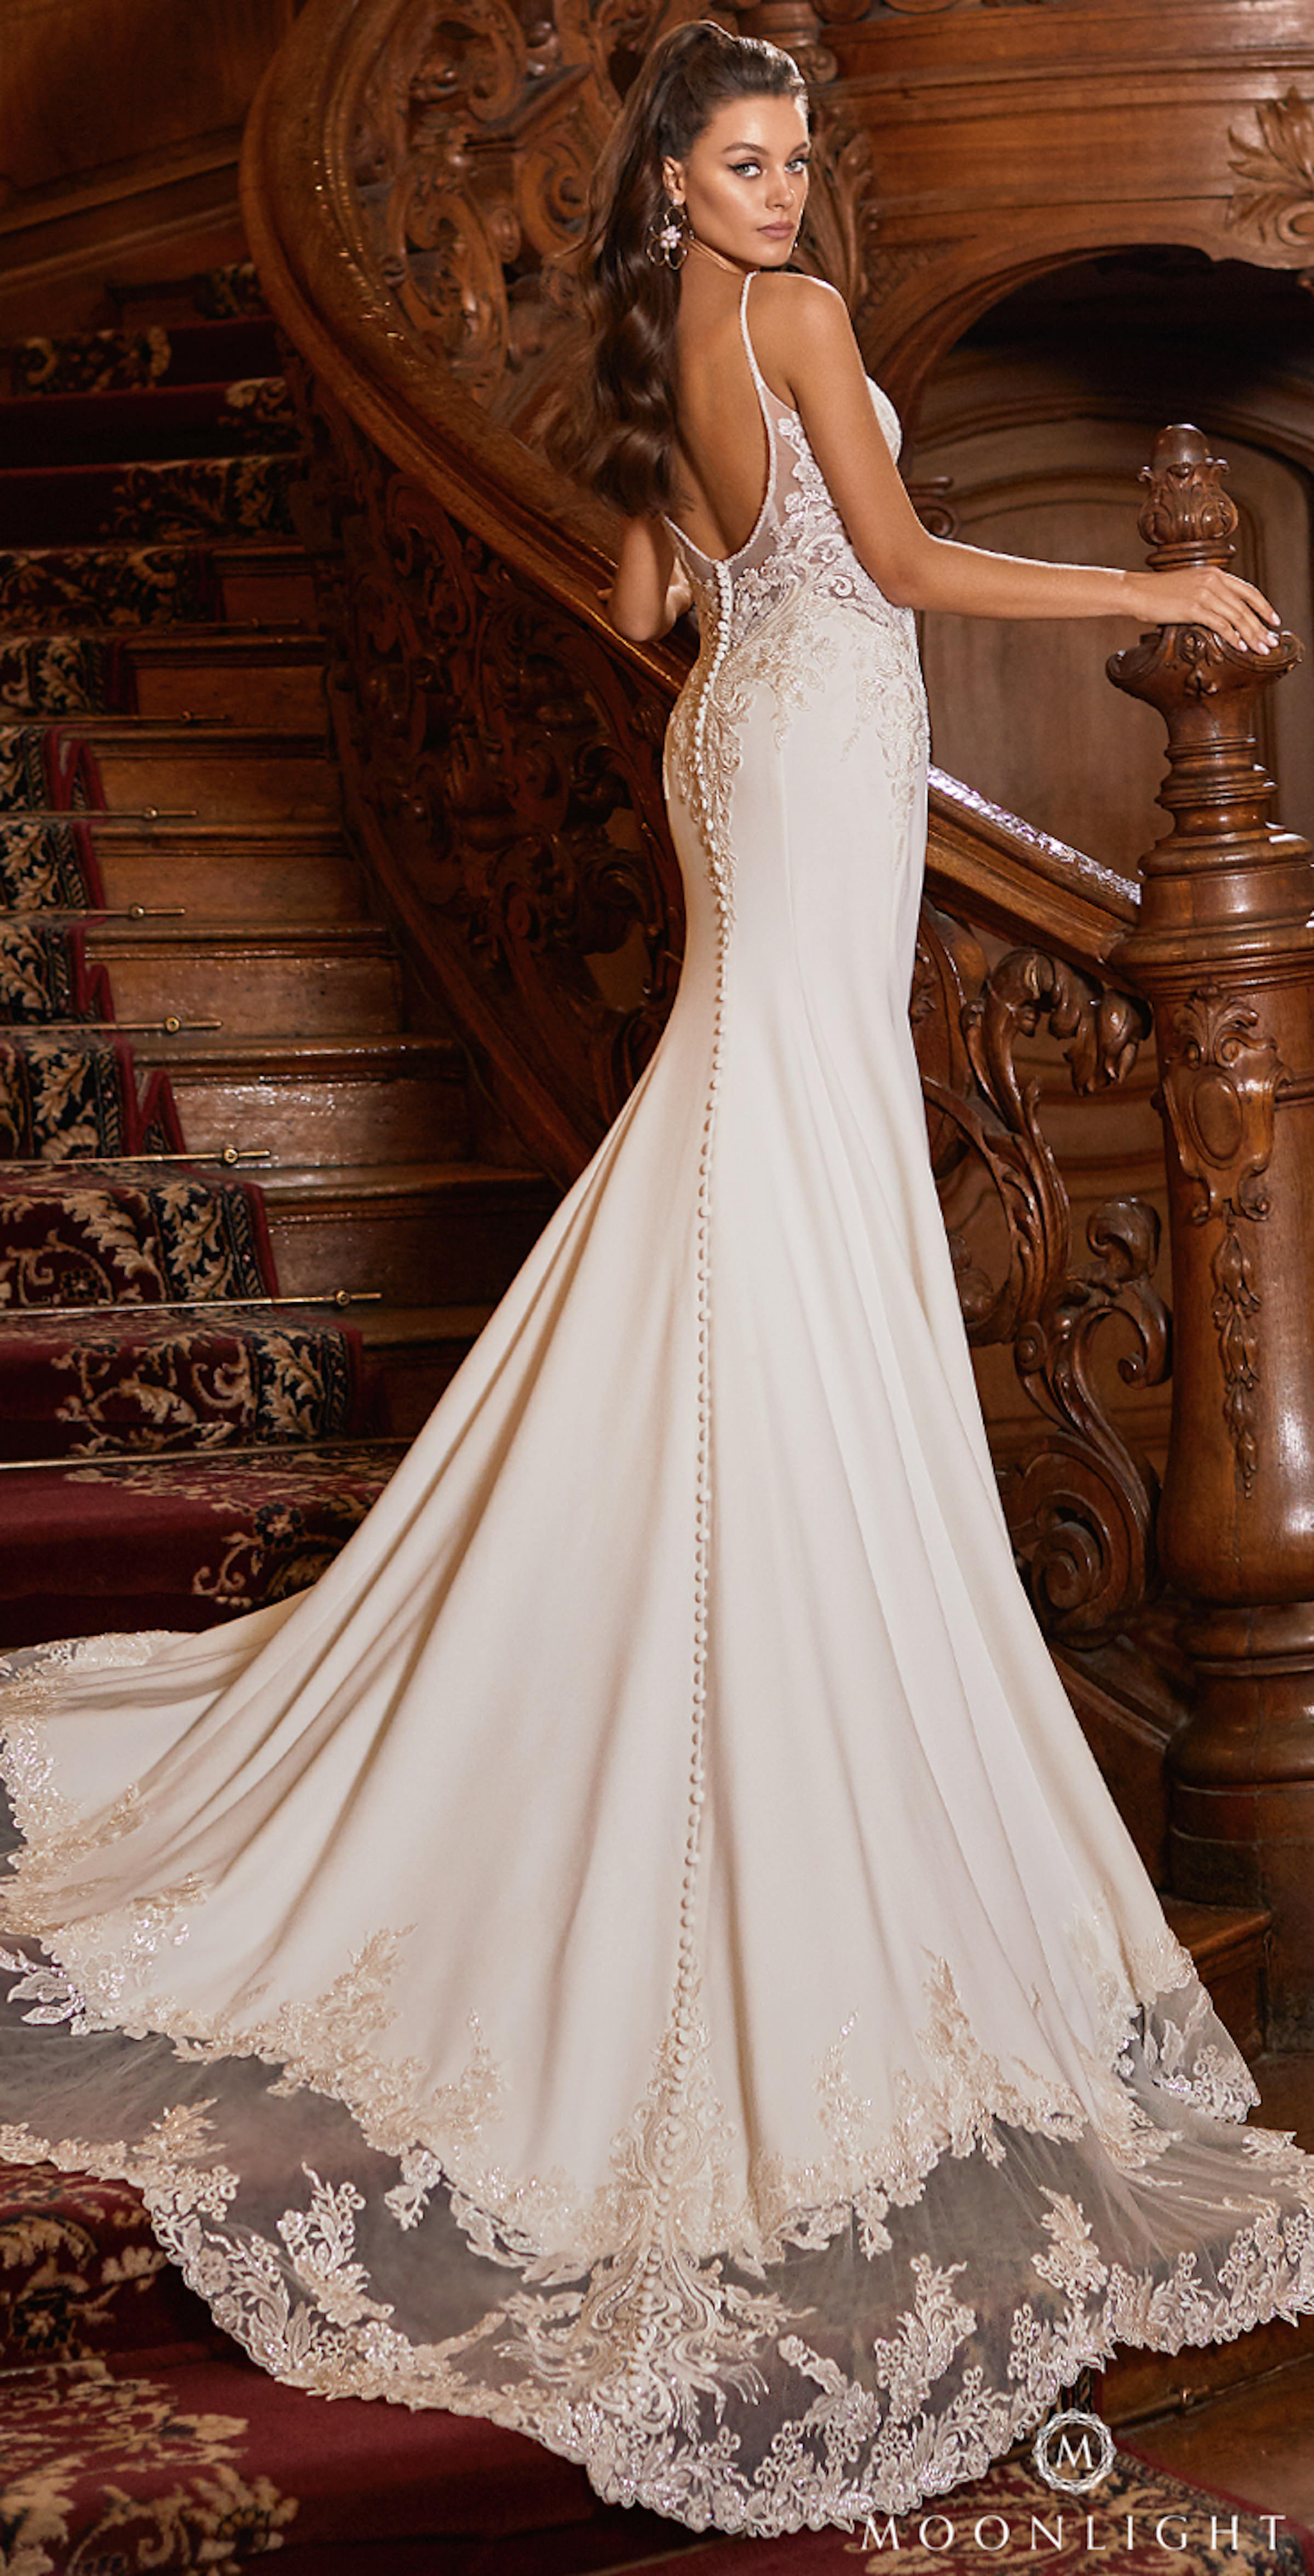 Gilded X Moonlight Collection Fall 2021 Wedding Dresses - J6826